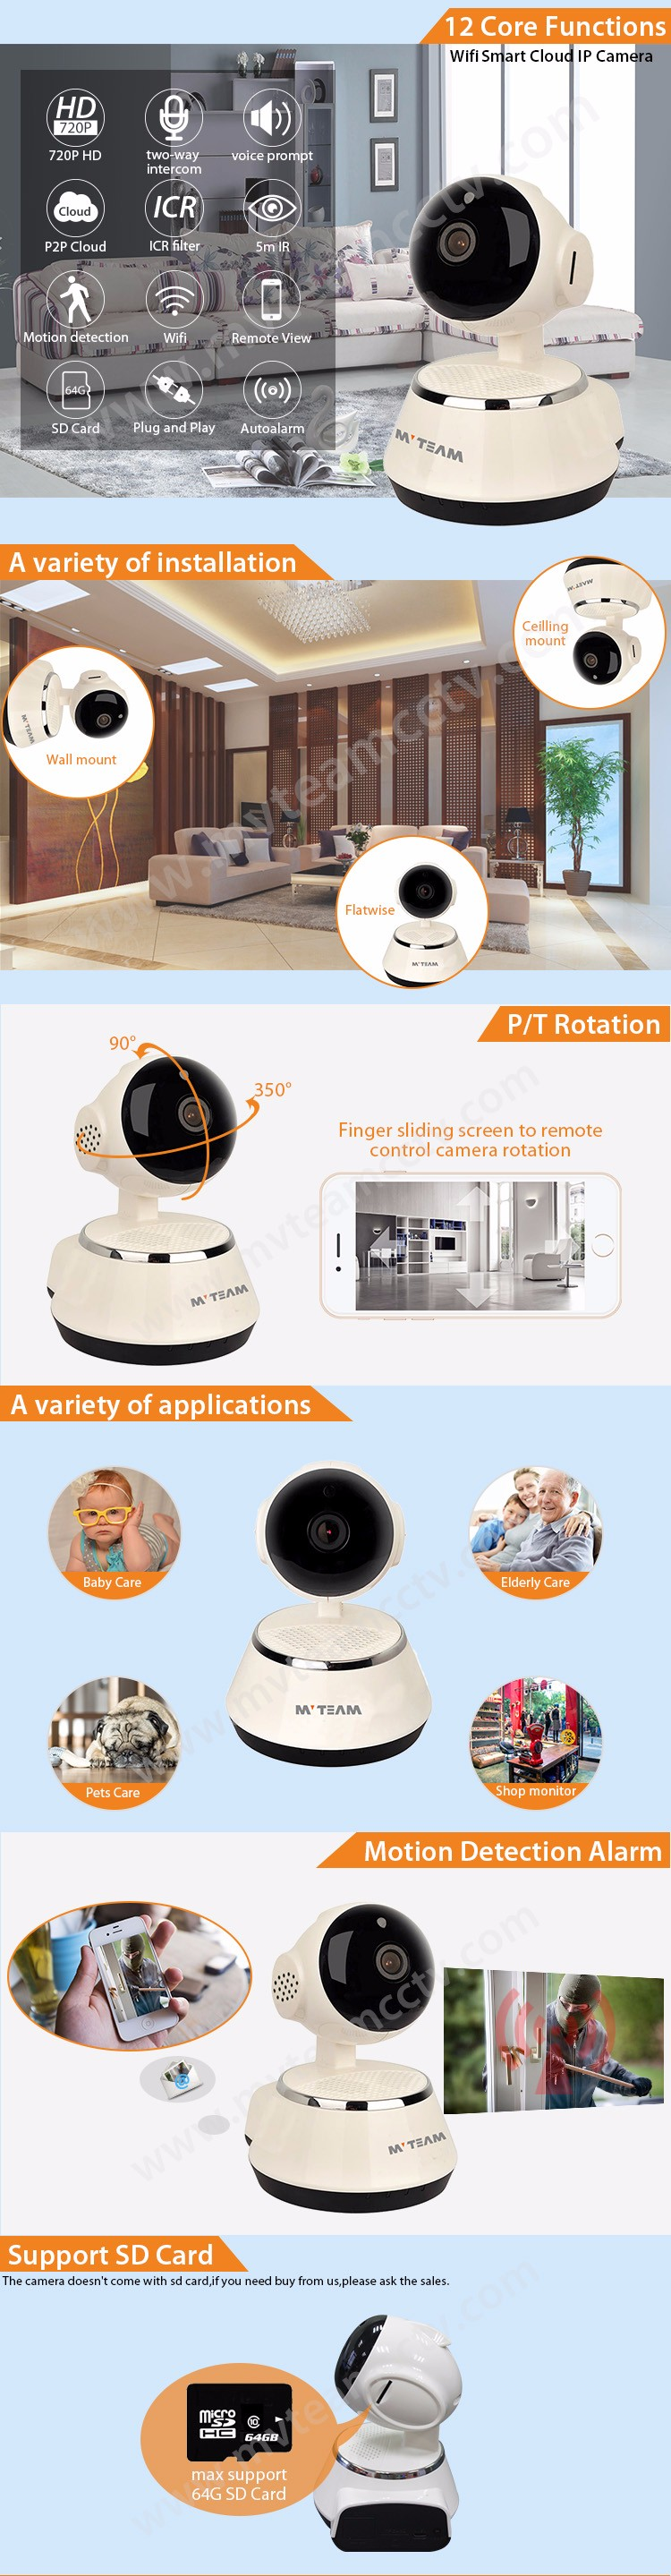 720P Mobile app V12 camera cctv wireless wifi IP camera HD smart Cam, View  cctv wireless wifi IP camera, MVTEAM or OEM Product Details from Shenzhen